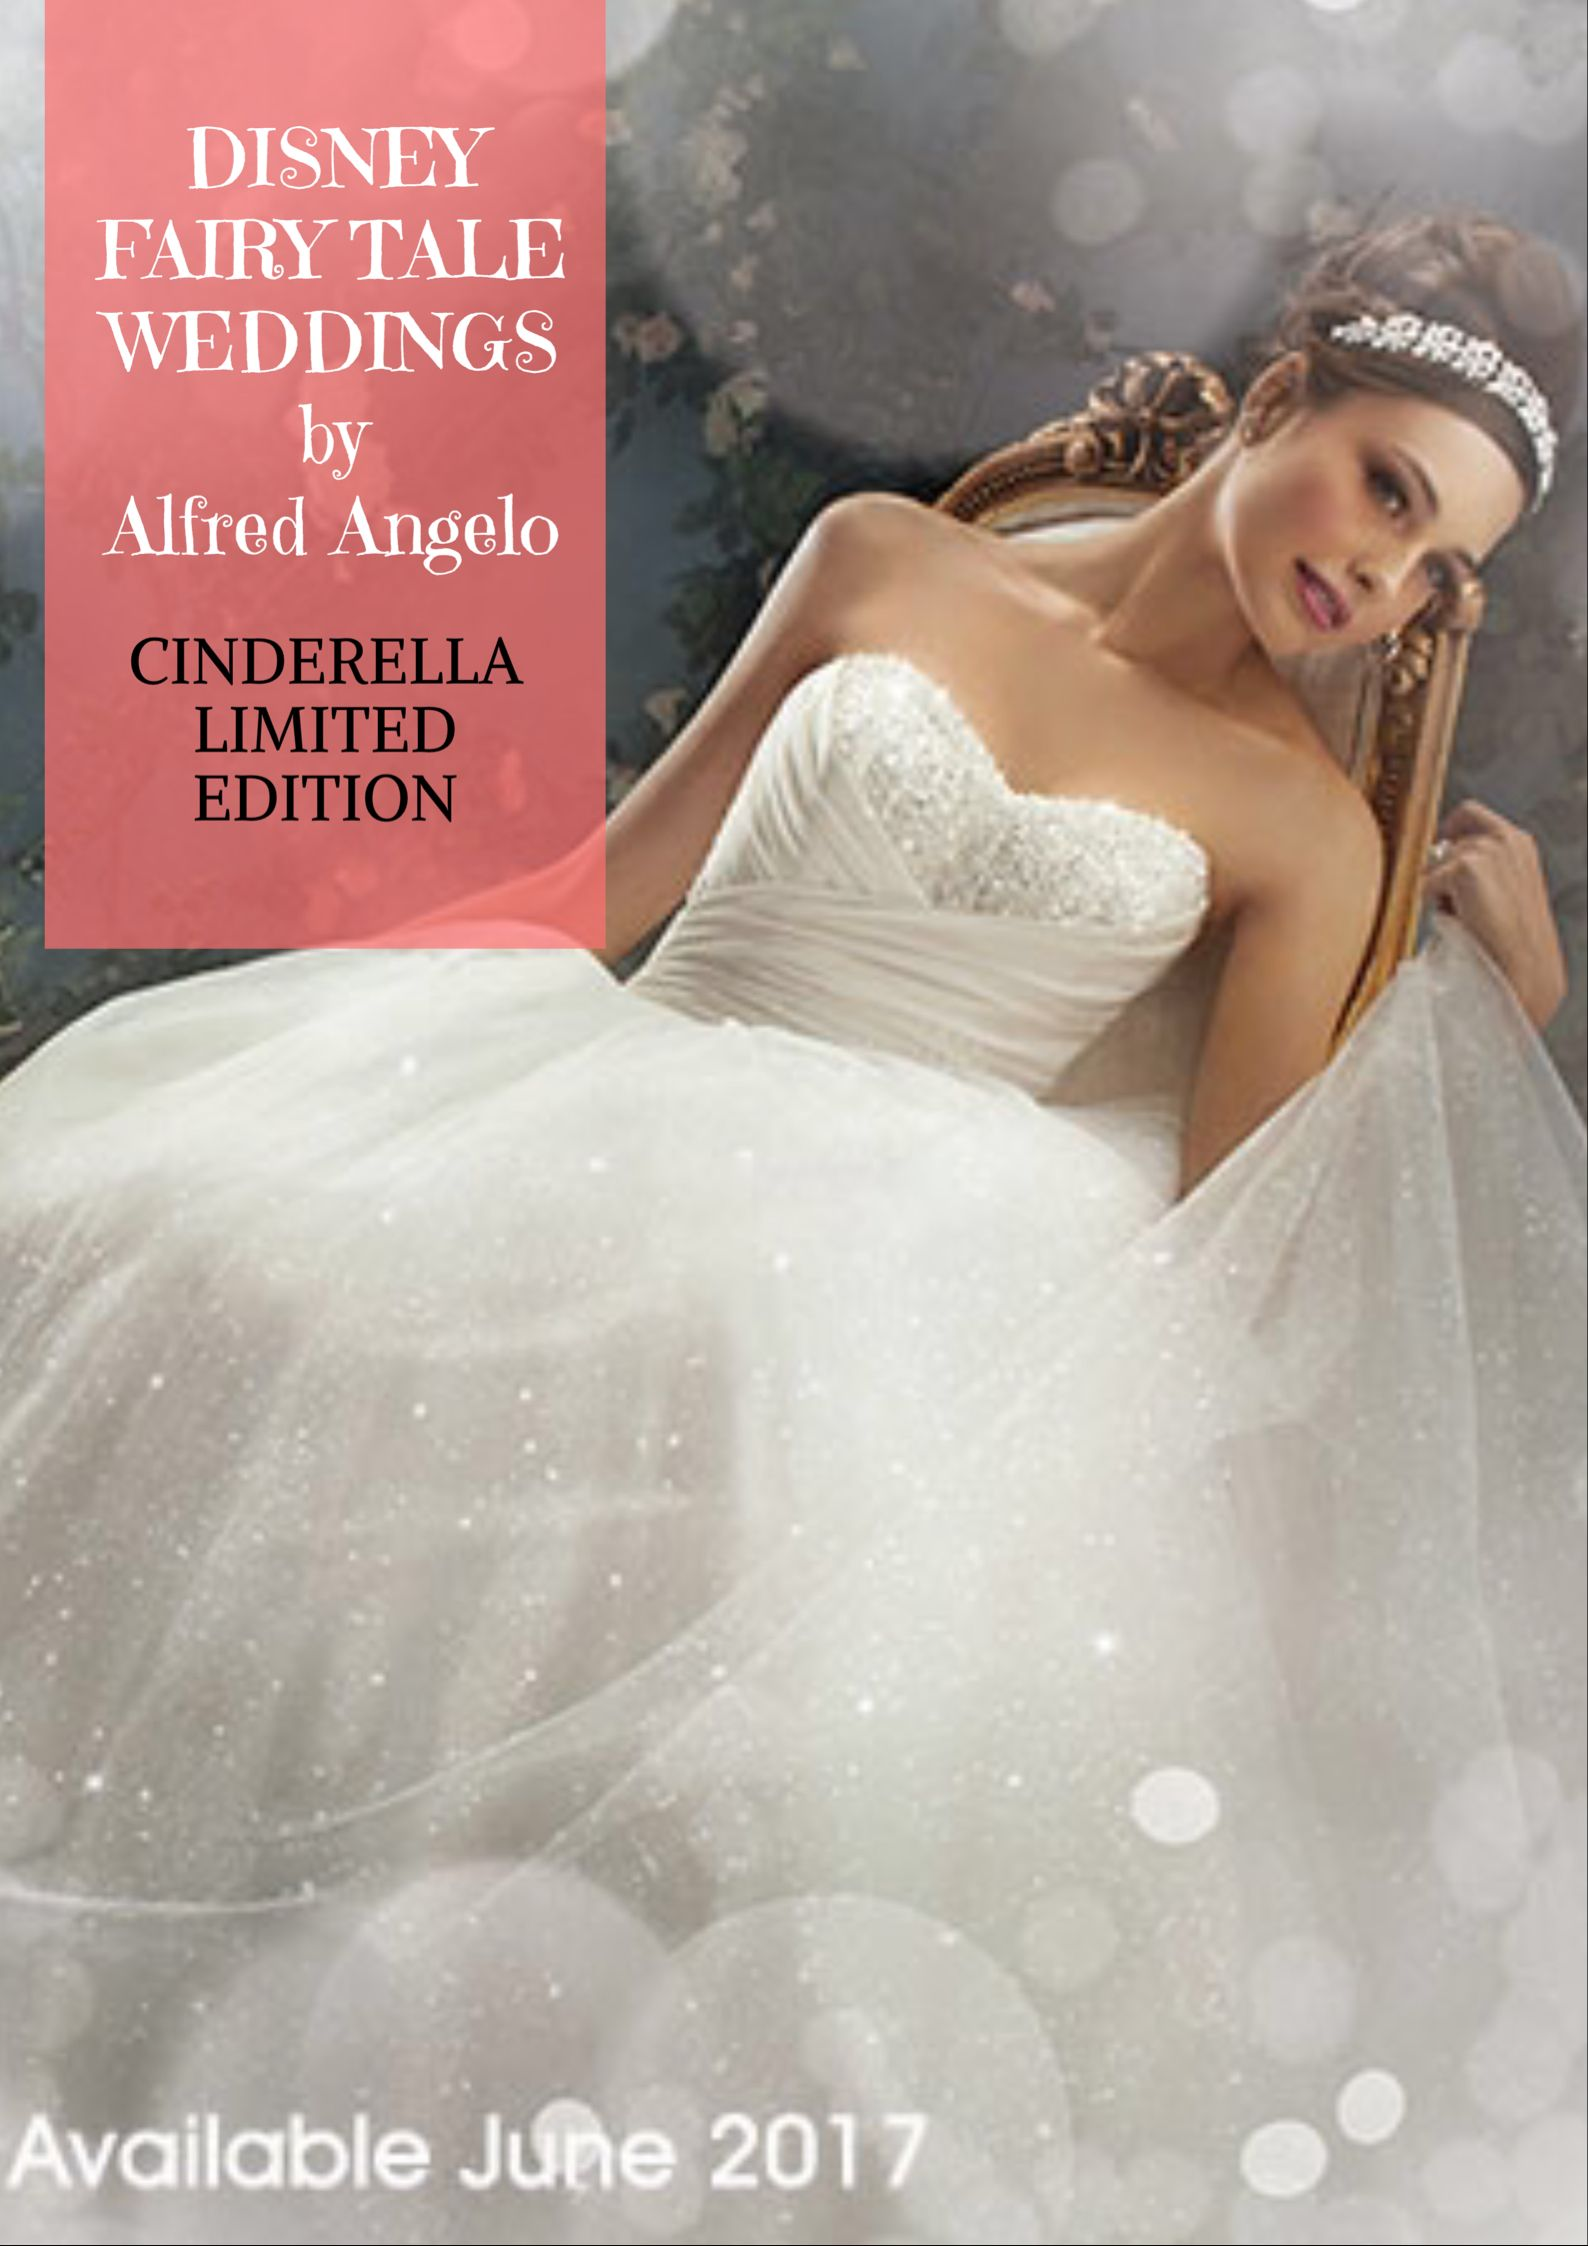 Cinderella wedding dress alfred angelo  Disney Princess Cinderella wedding dress design for Limited